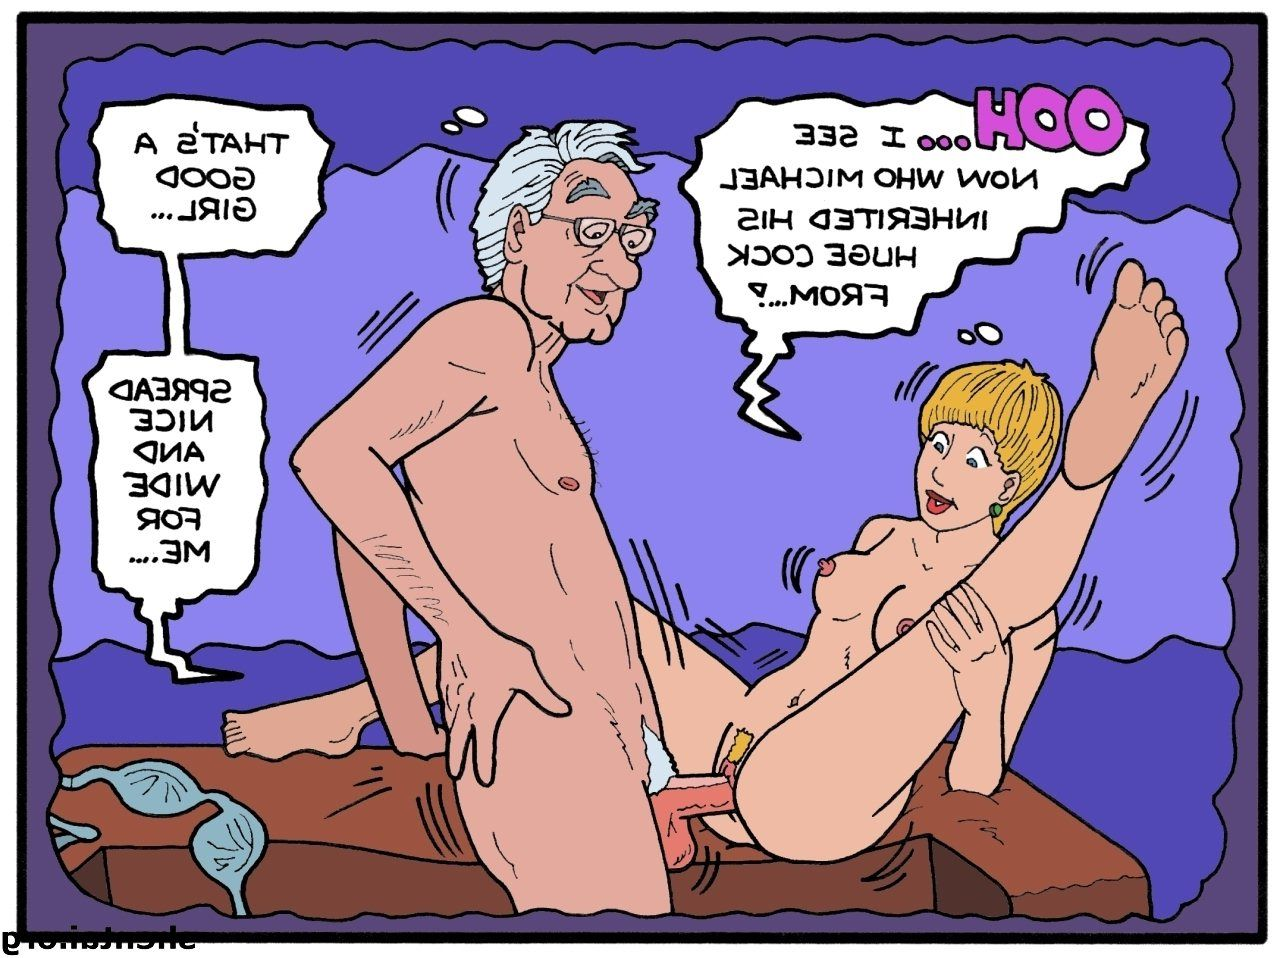 Cartoon sex parodys